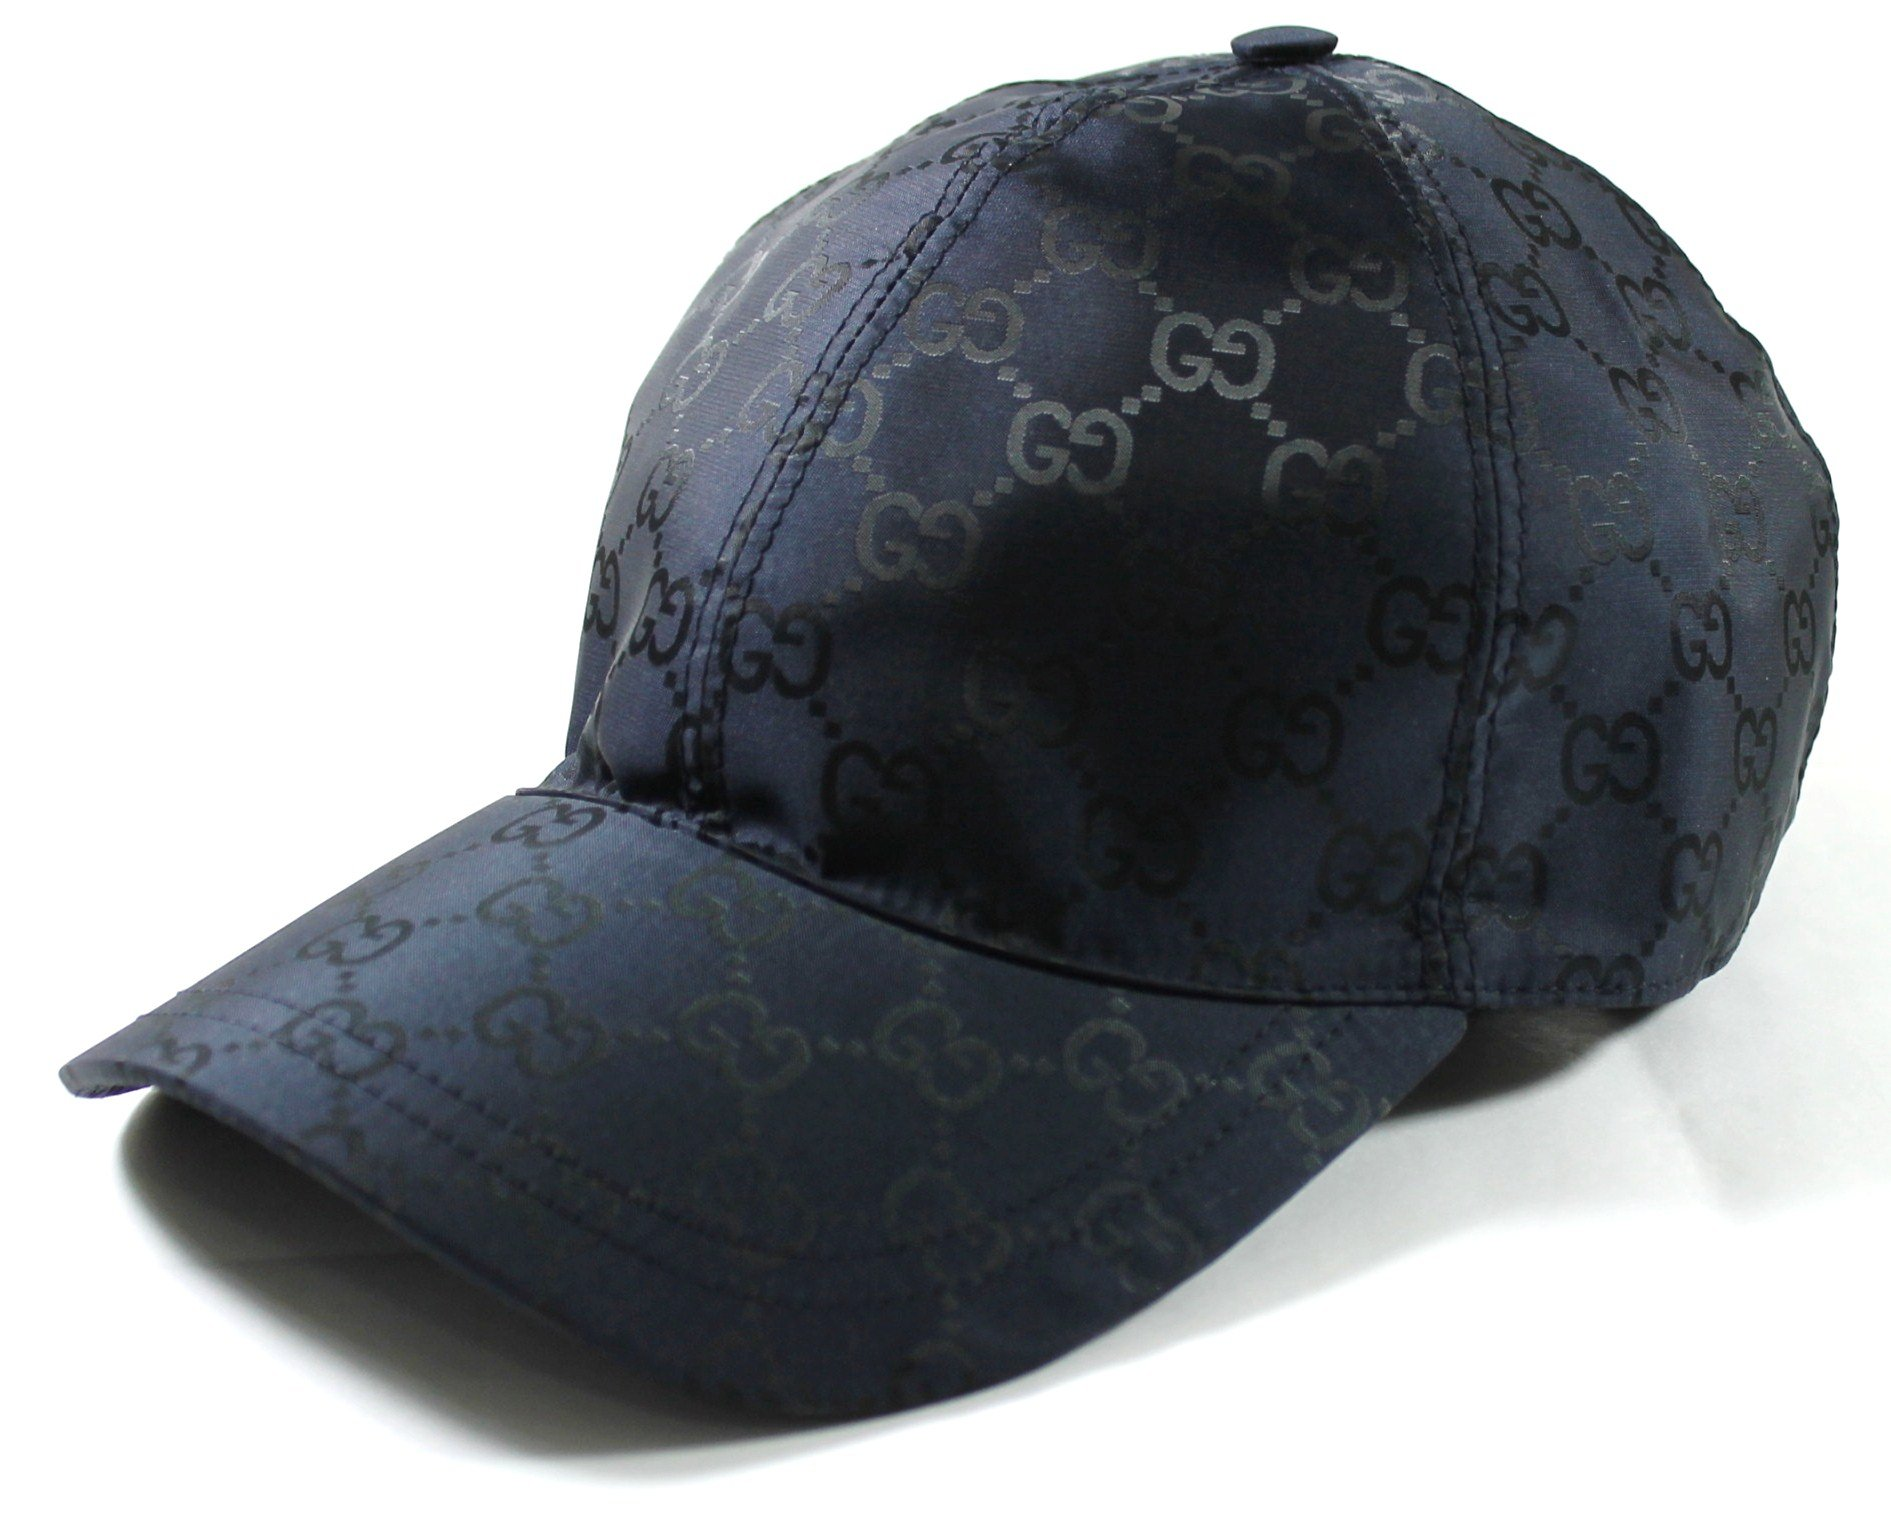 Gucci GG Nylon Baseball Cap, Navy Large 387578 by Gucci